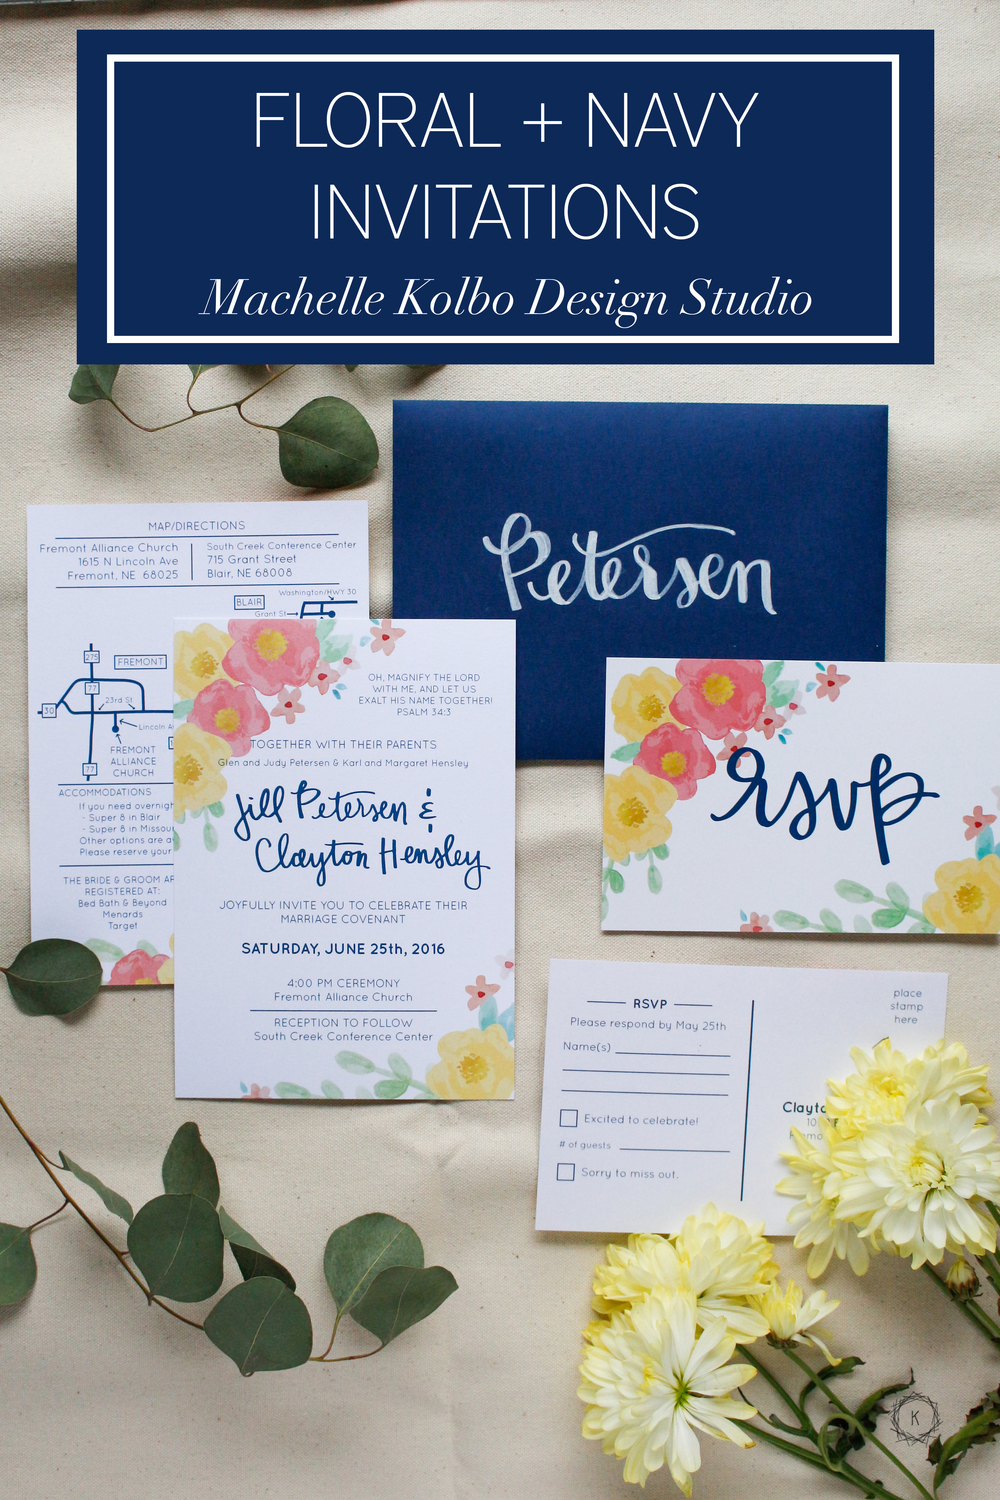 Floral + Navy Wedding Invites // Machelle Kolbo Design Studio